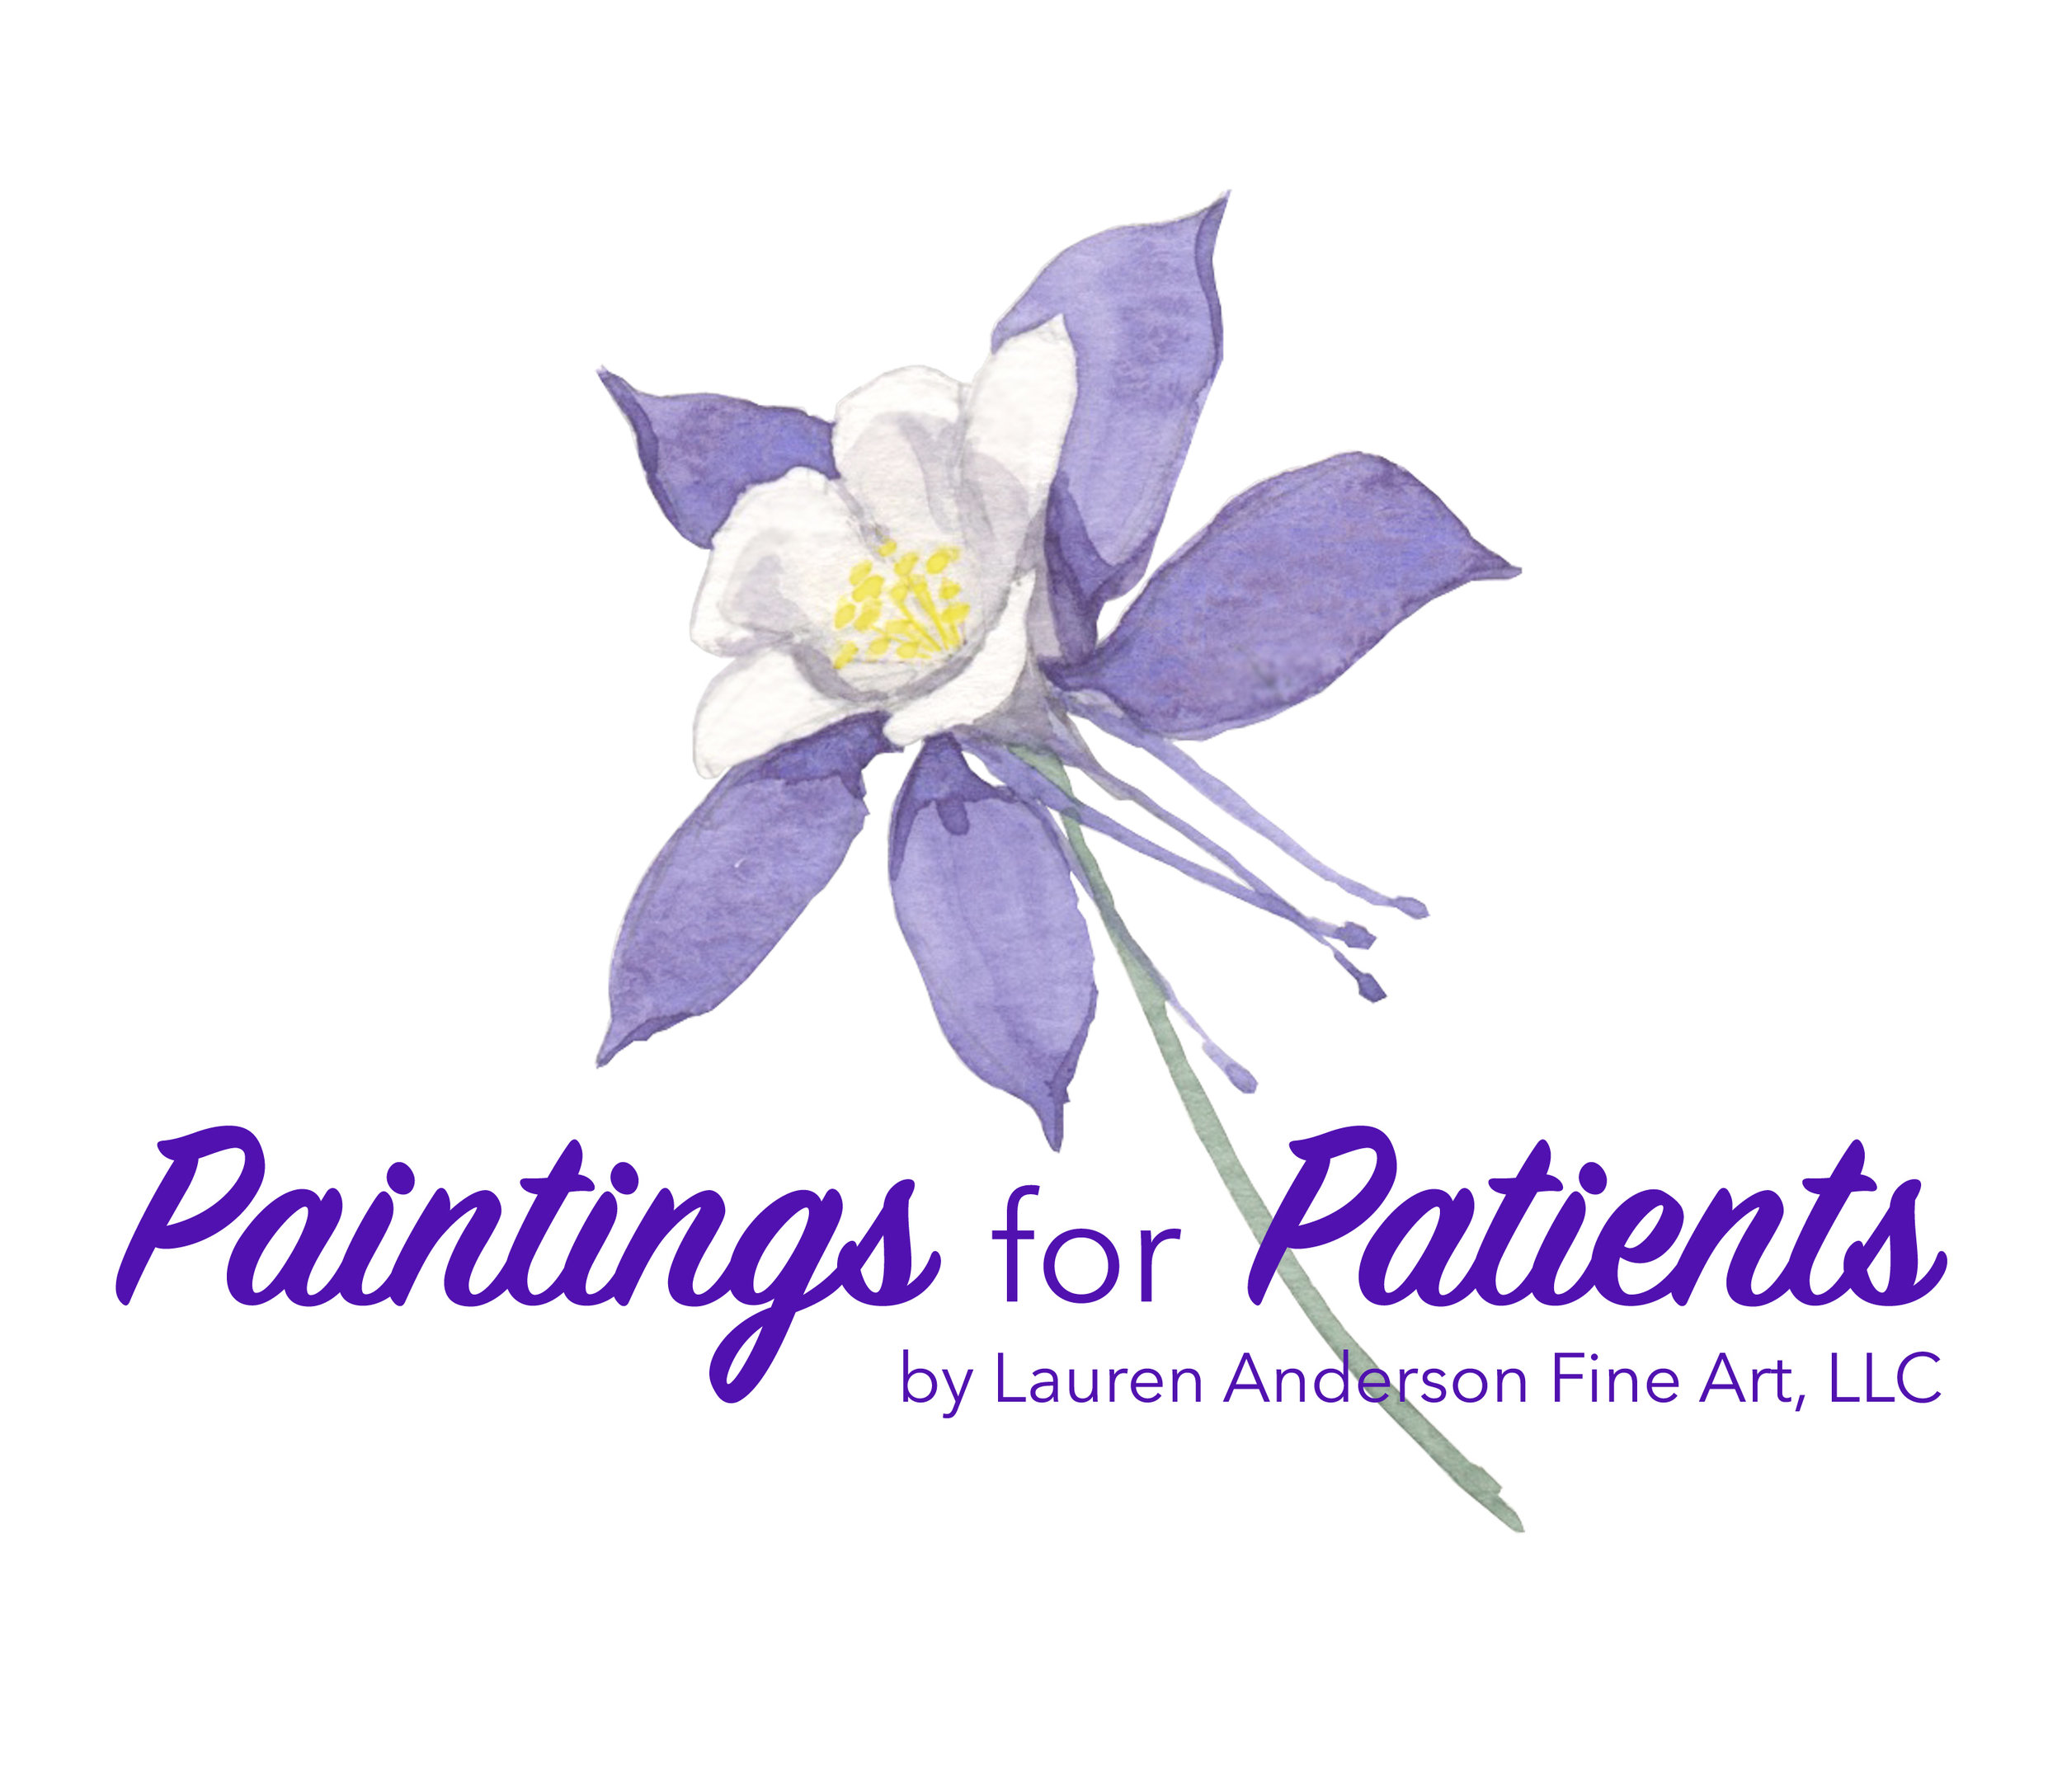 PAINTINGS FOR PATIENTS.jpg